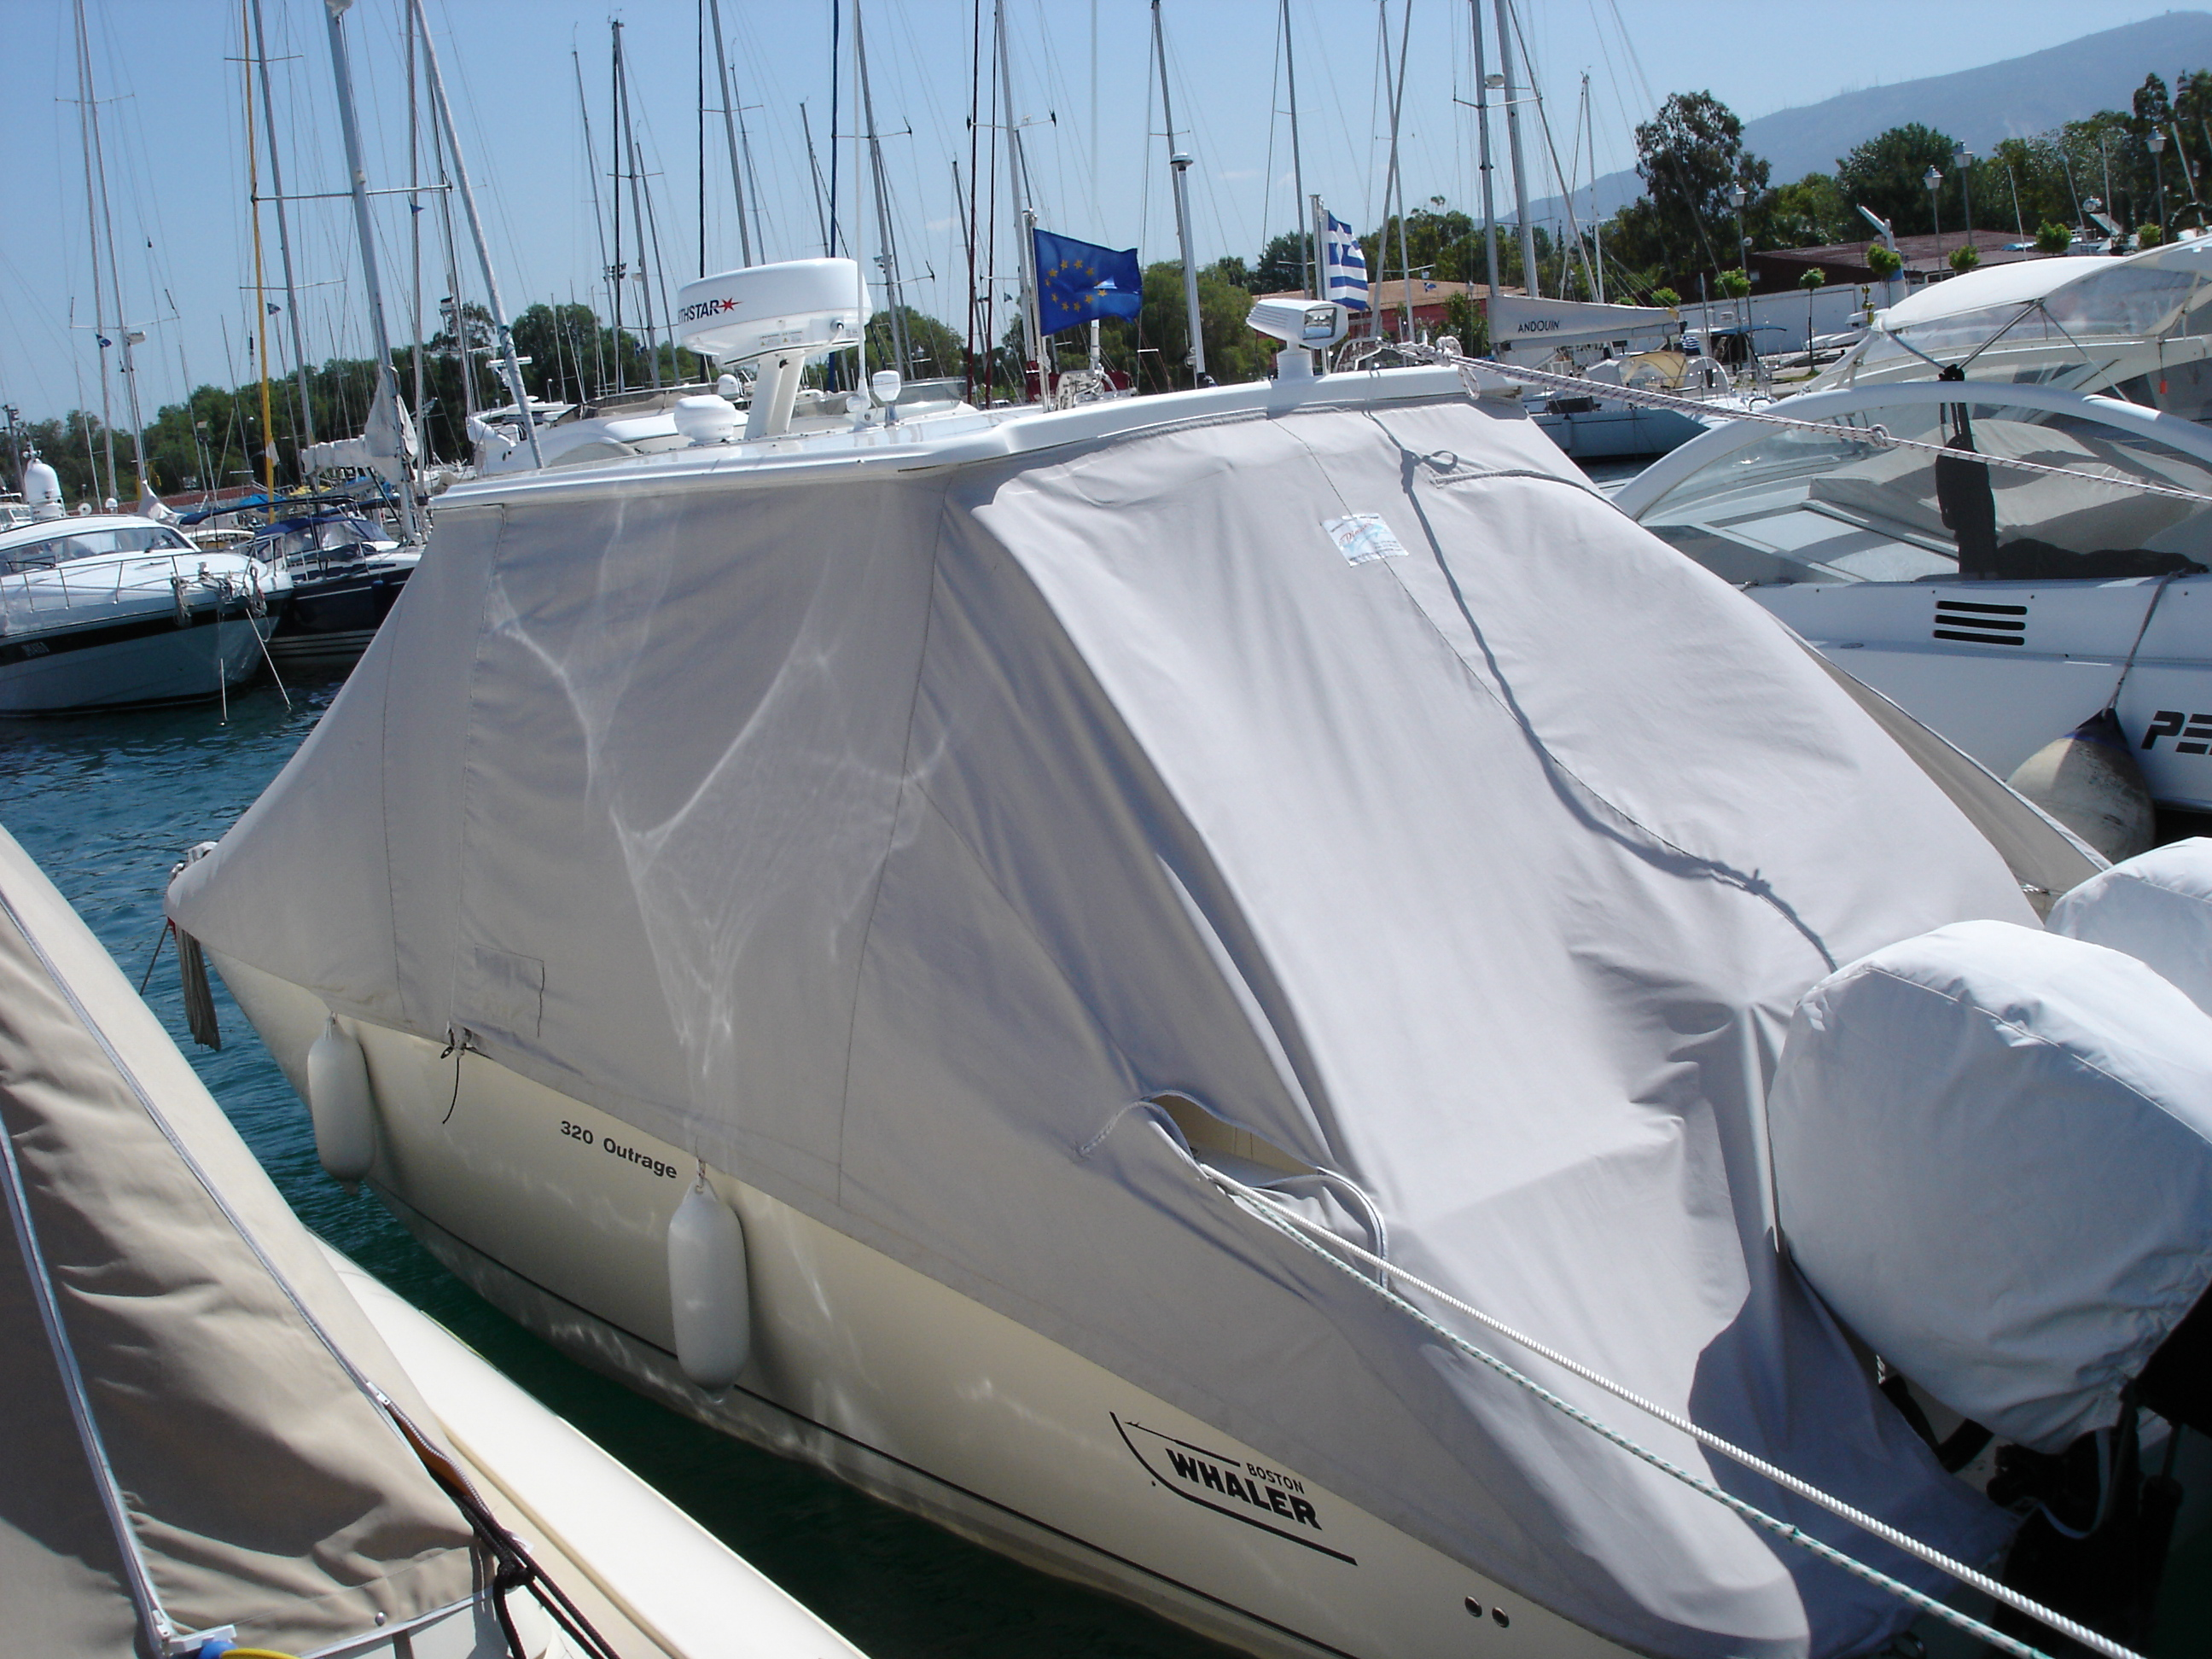 Boston Whaler 320 Cover easy removable in two pieces.